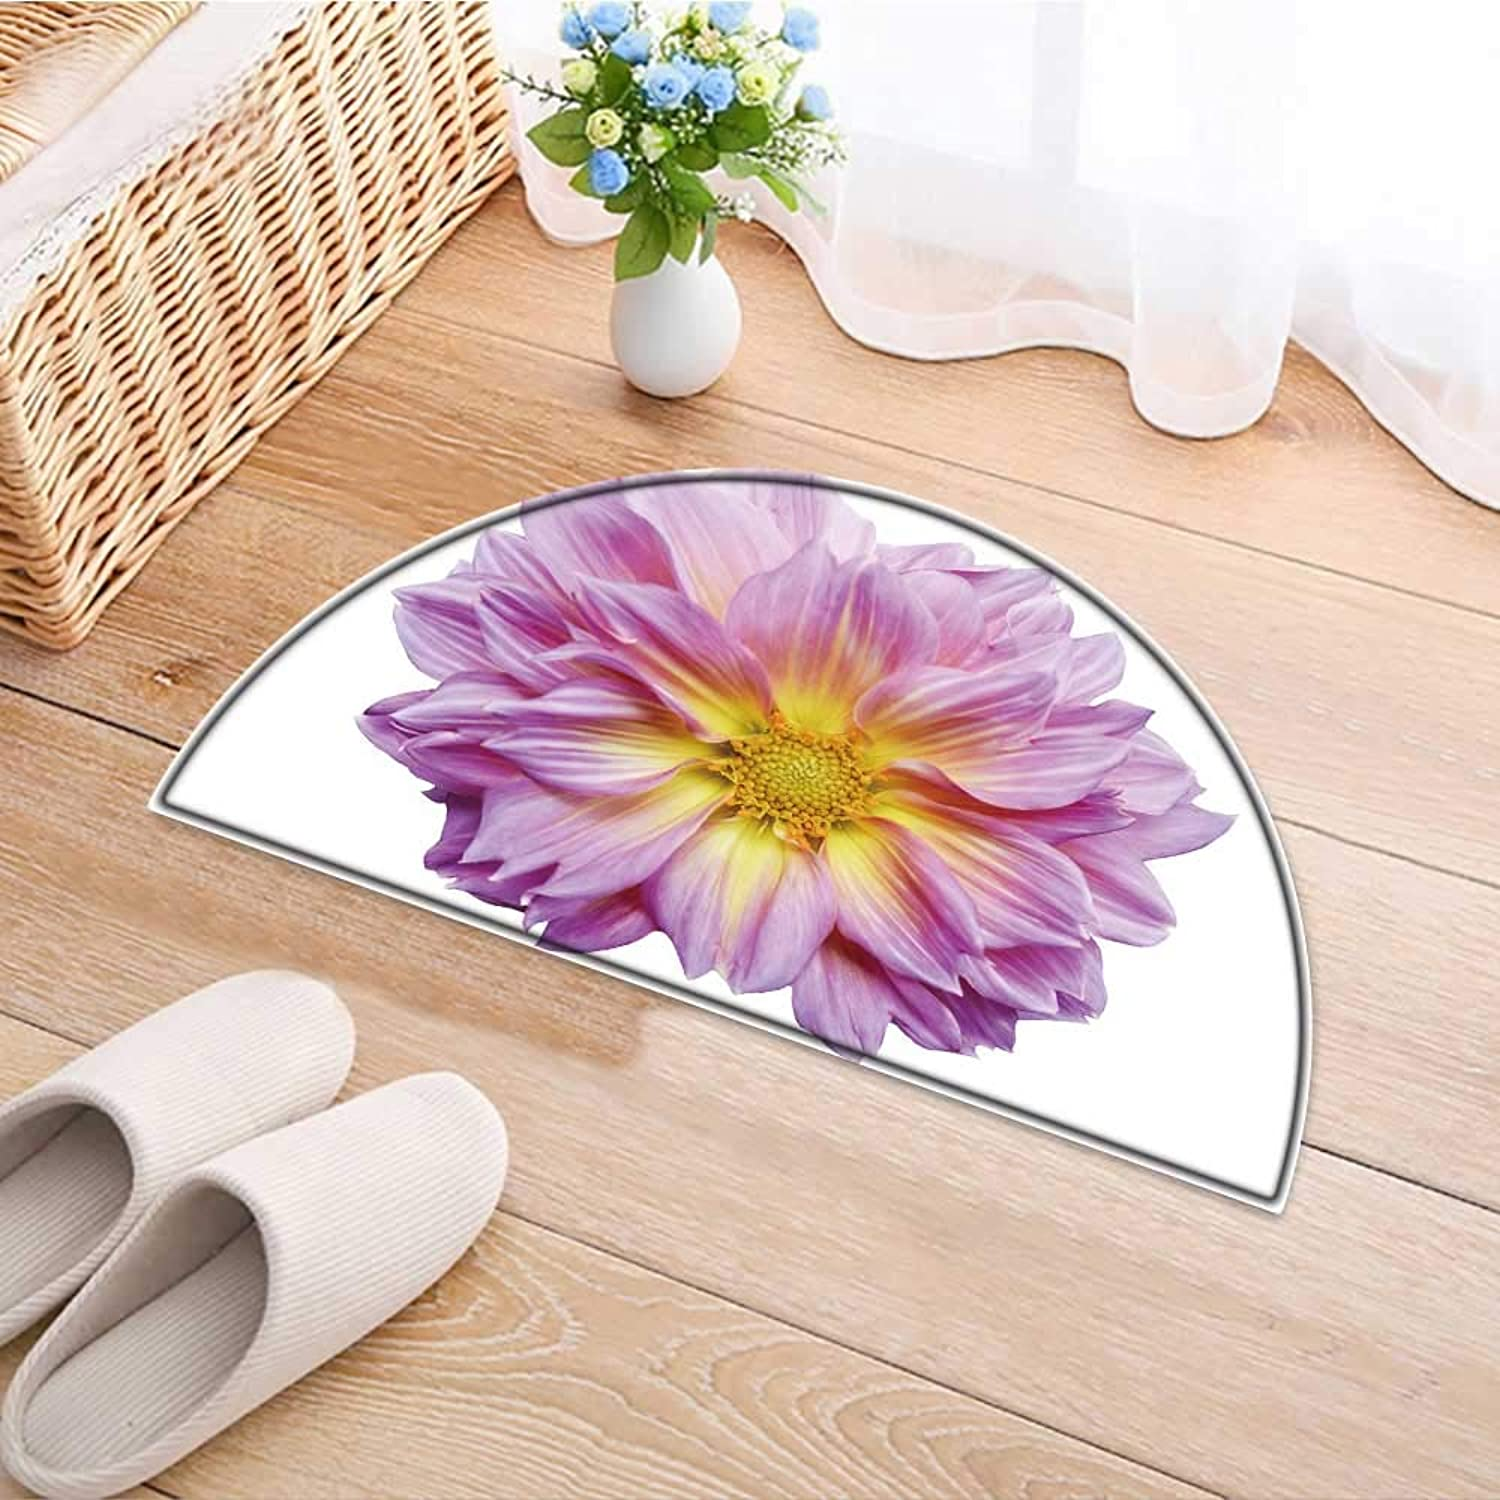 Semicircle Area Rug Carpet Pink Dahlia Flower on White Background Door mat Indoors Bathroom Mats Non Slip W47 x H32 INCH